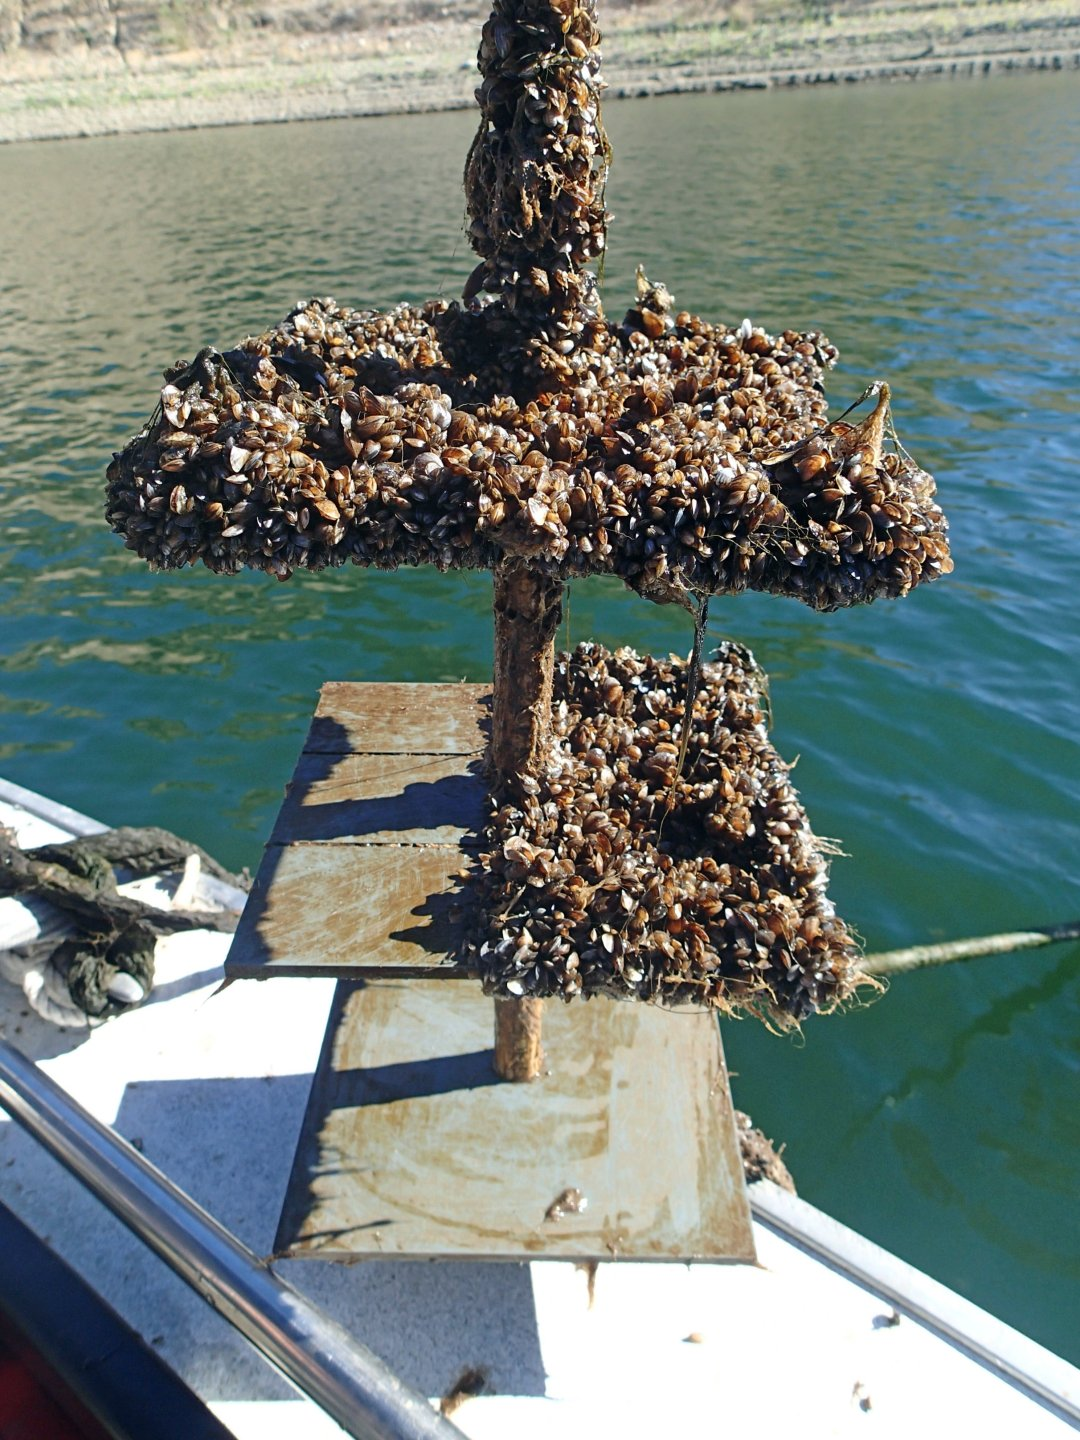 Quagga mussels stuck onto an anchor of a boat.